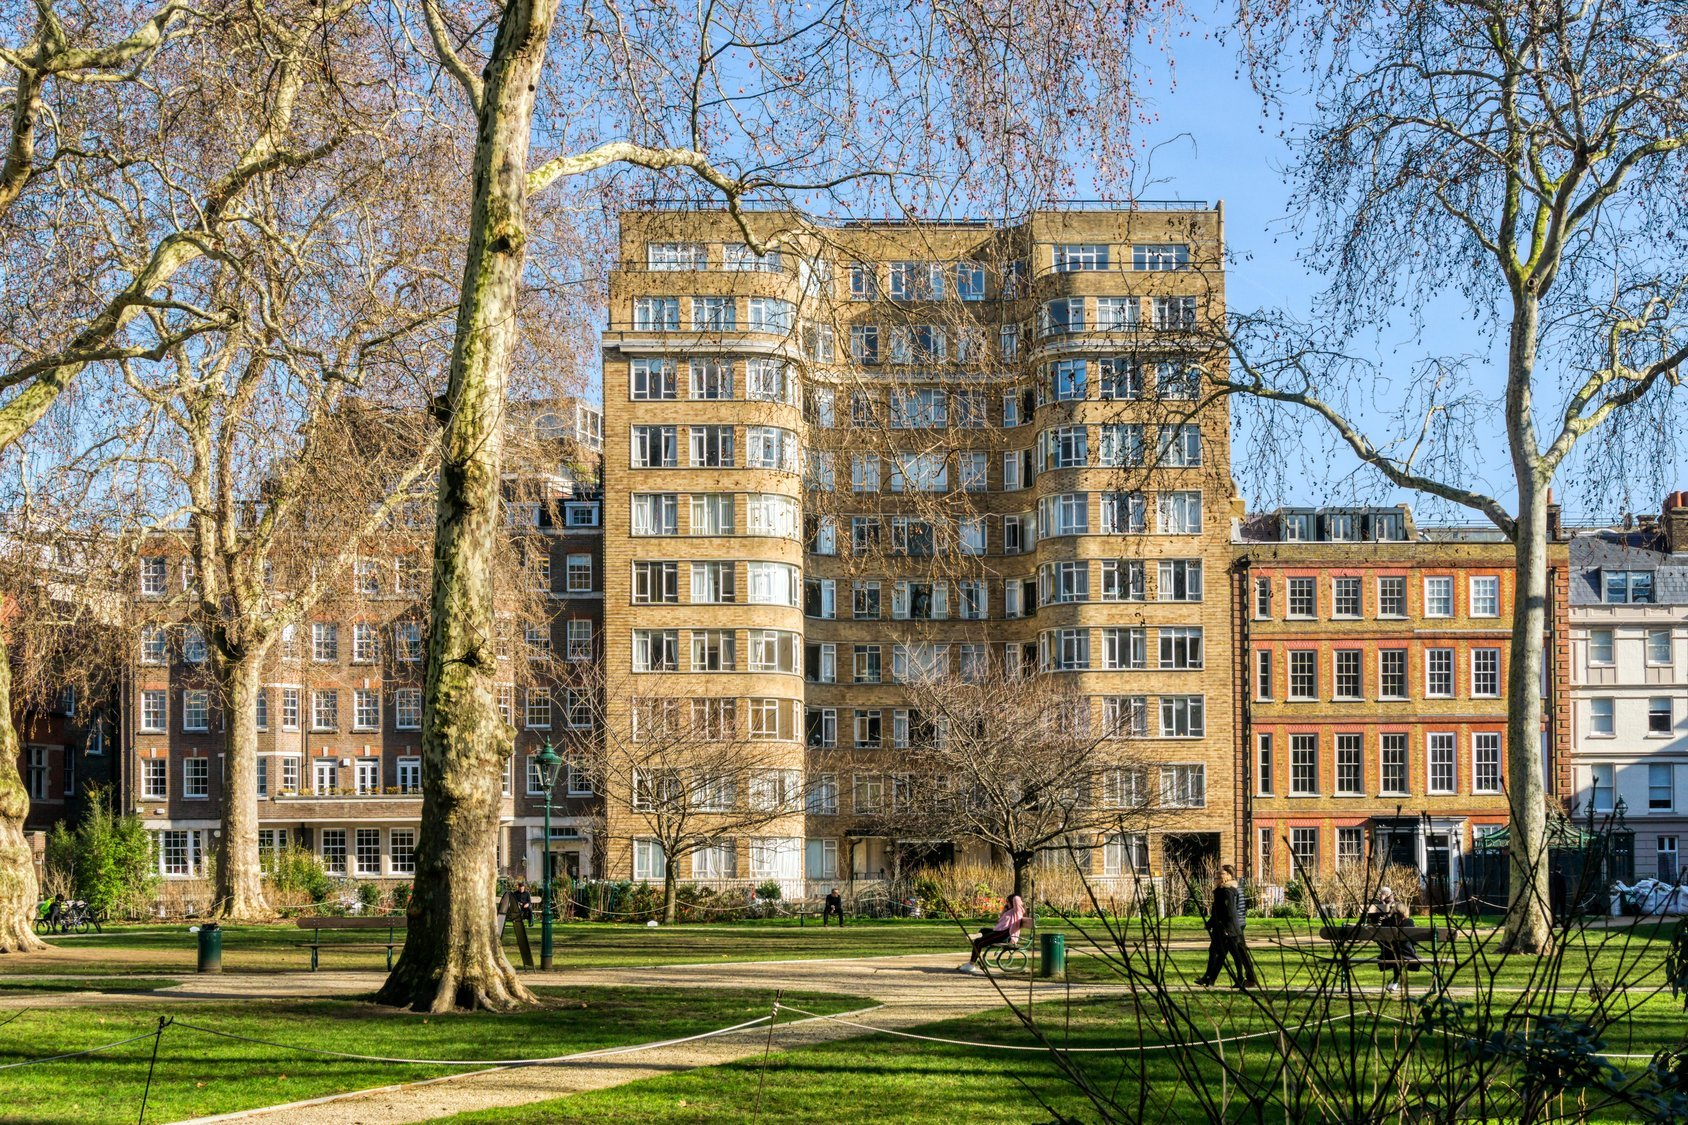 Florin Court seen across Charterhouse Square features as Whitehaven Mansions, the home of Hercule Poirot, in the TV series 'Agatha Christie's Poirot'.